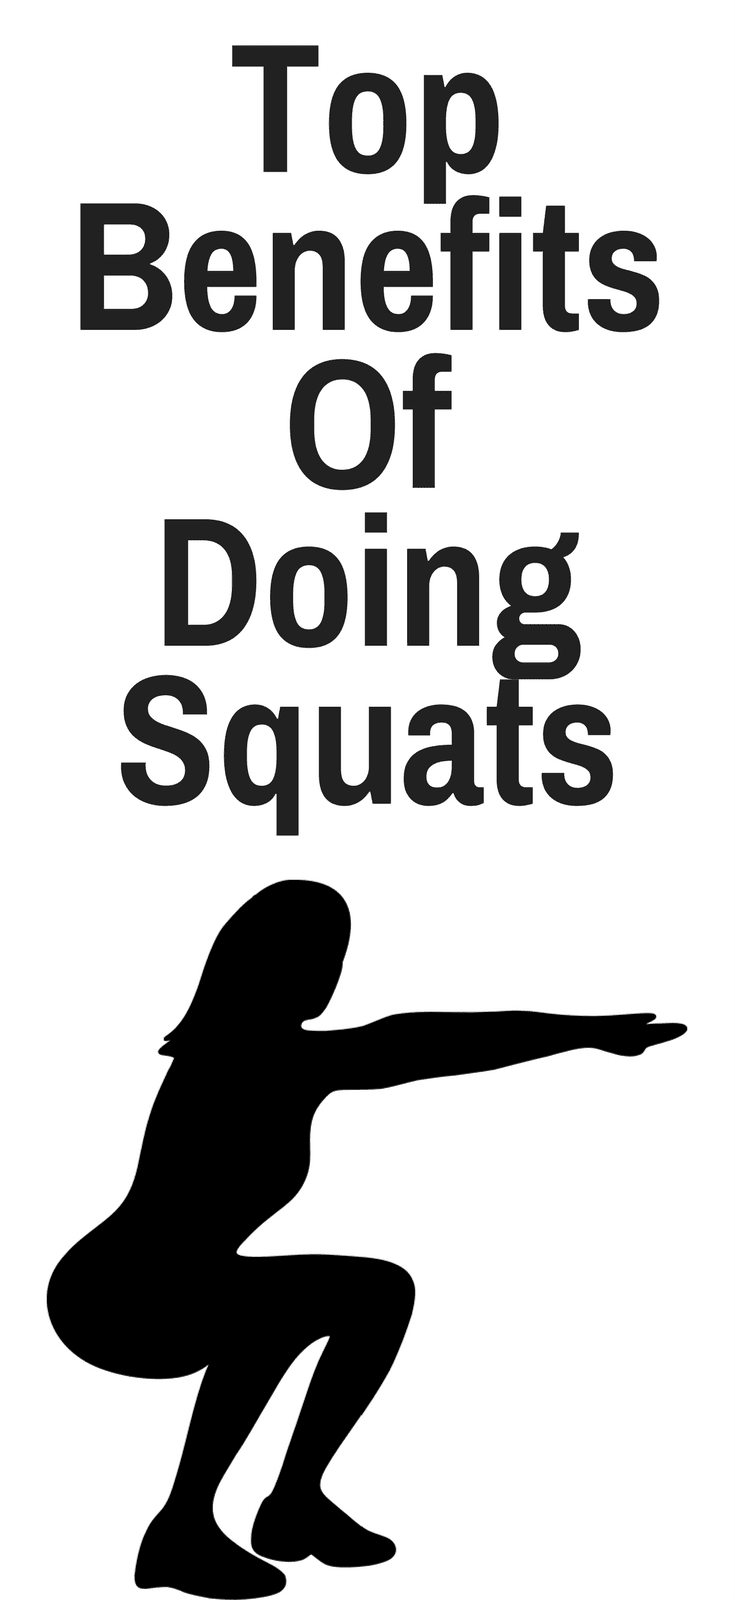 Top Benefits Of Doing Squats